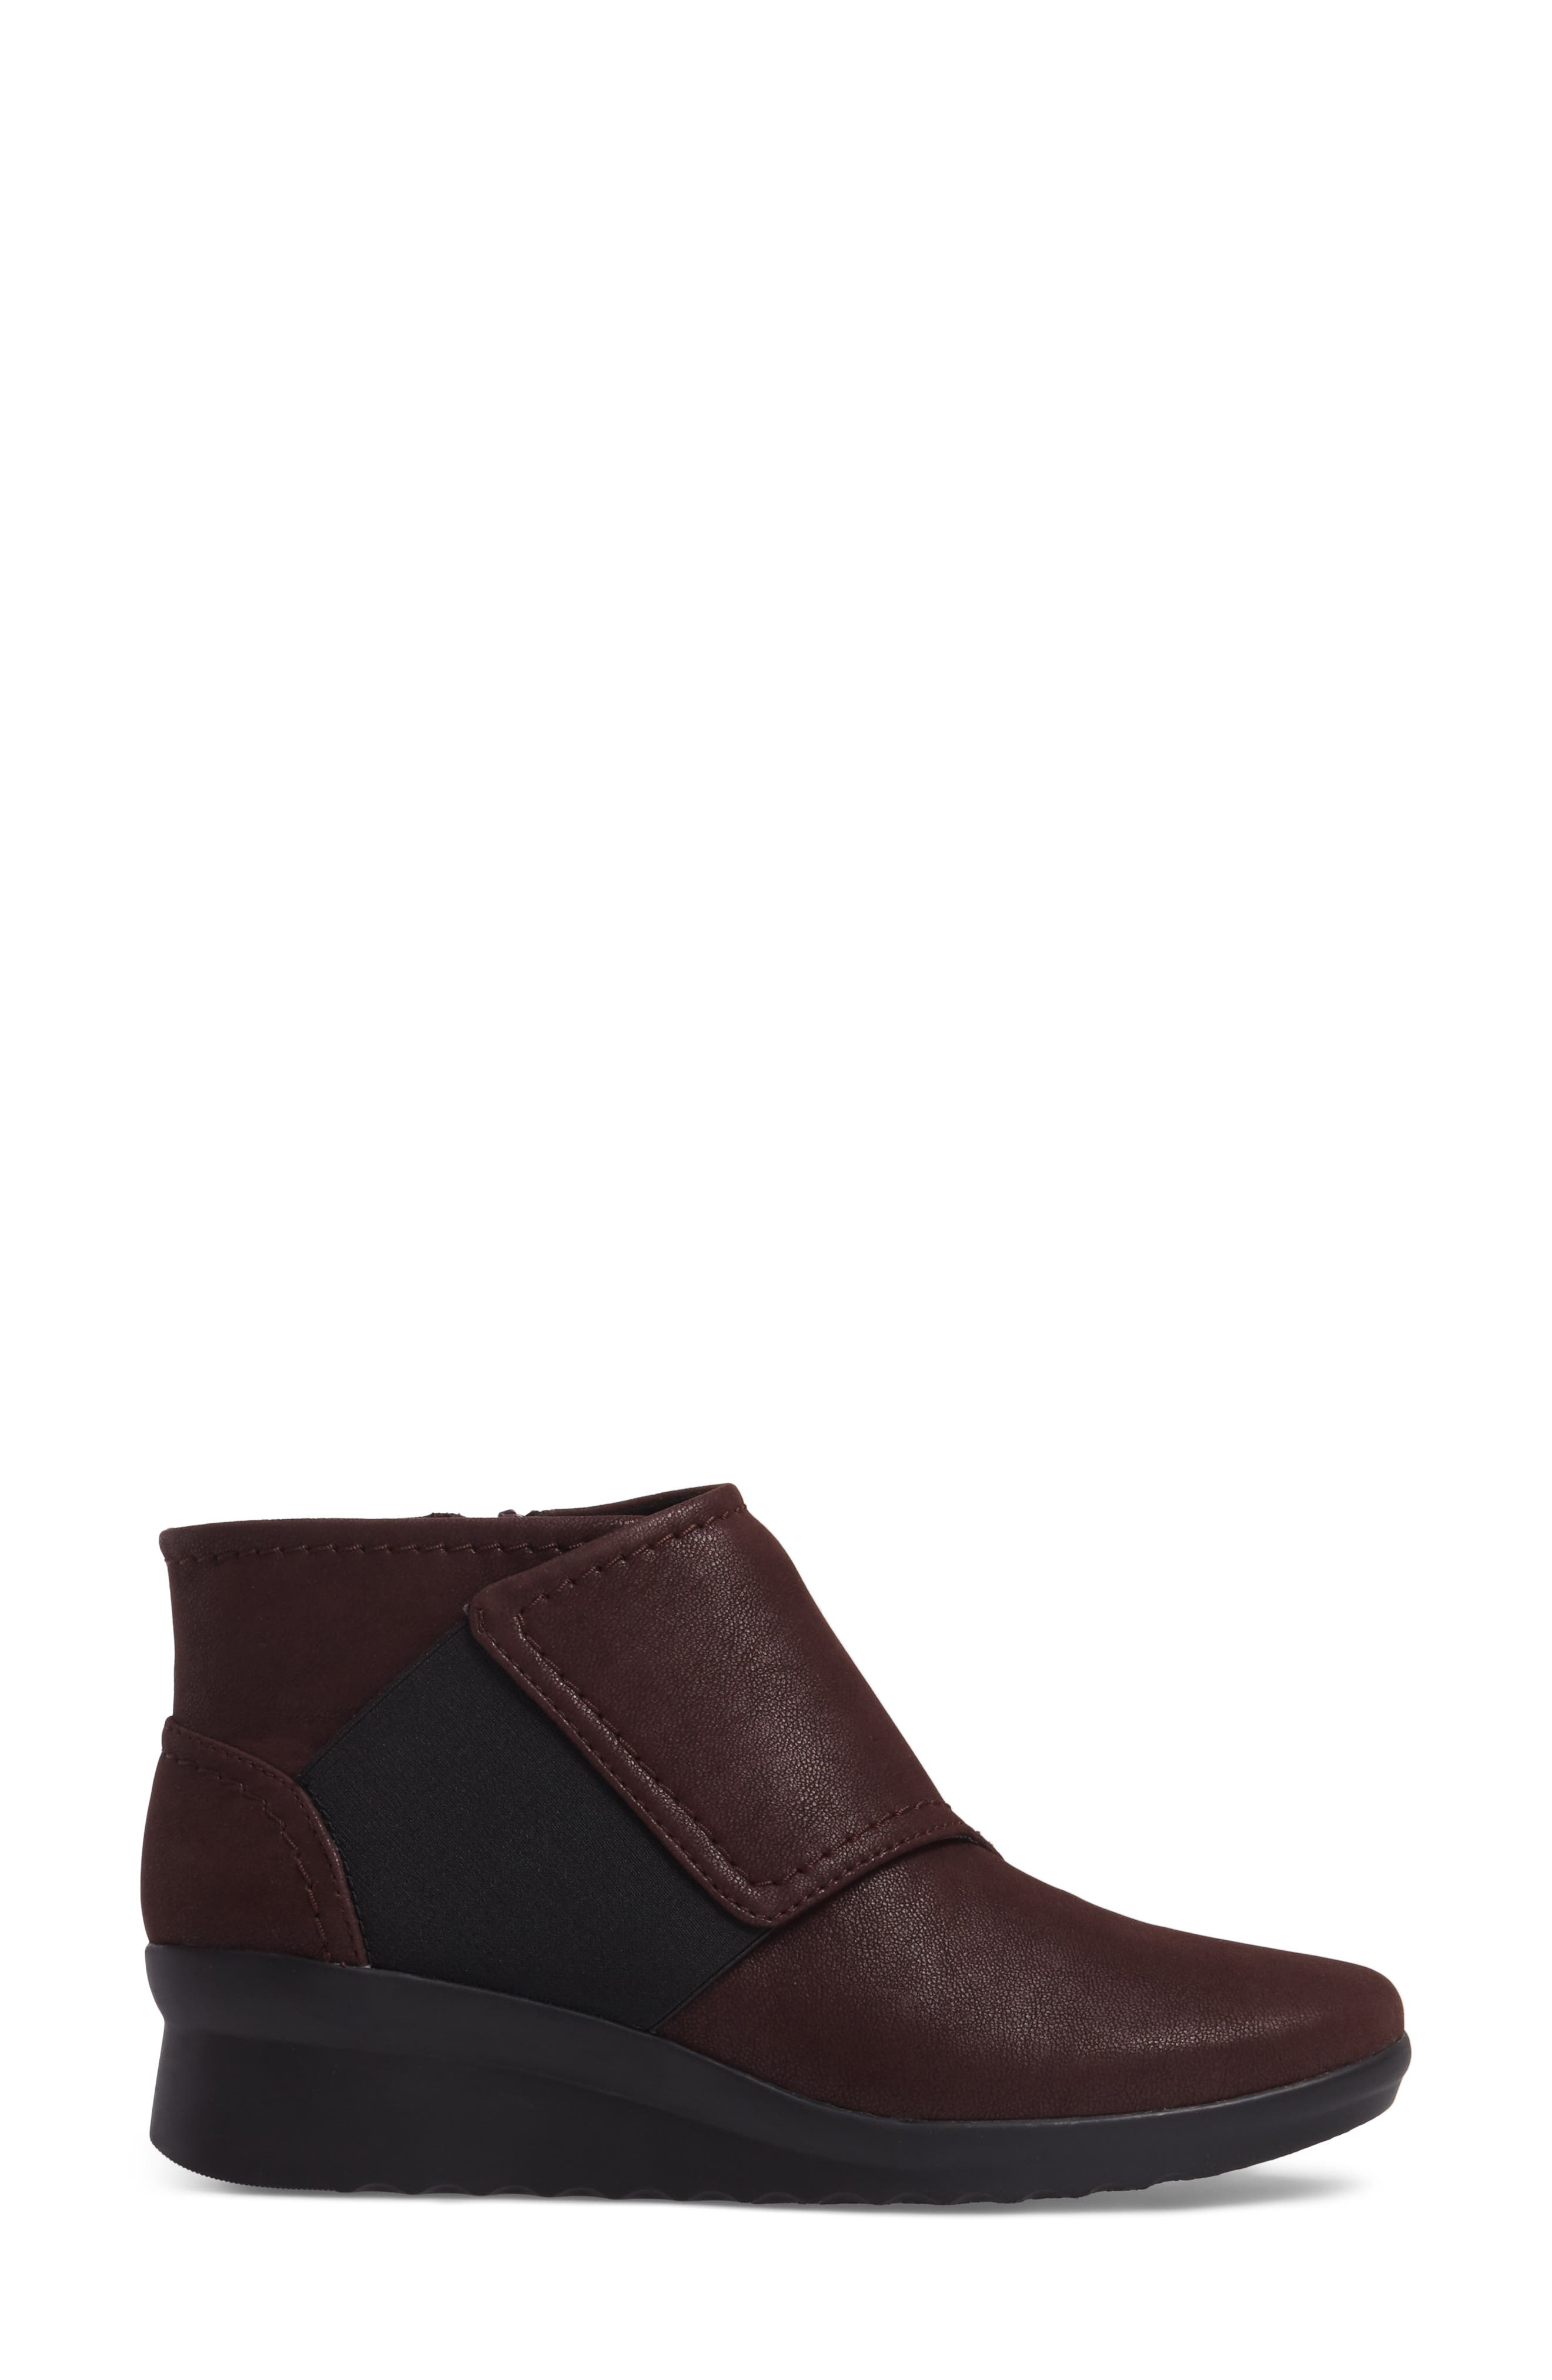 Caddell Rush Bootie,                             Alternate thumbnail 3, color,                             Burgundy Leather